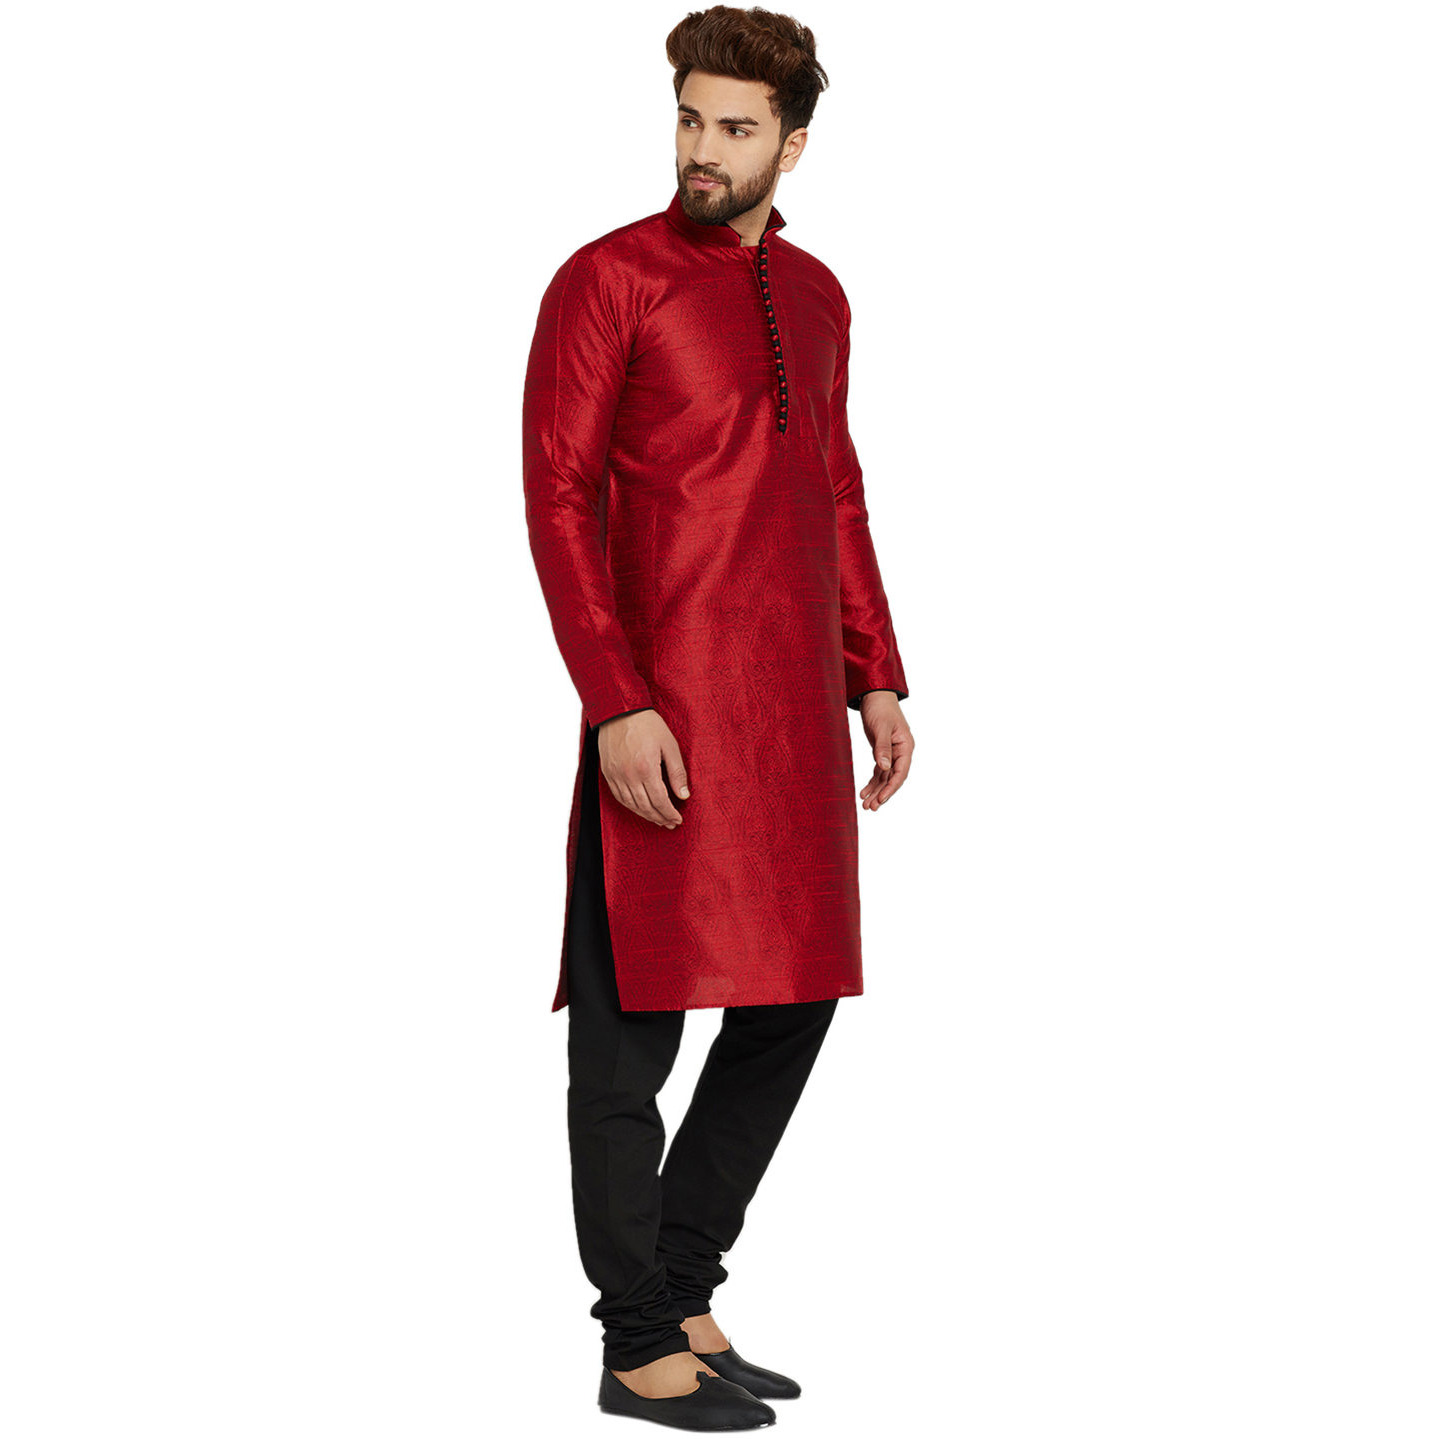 Mens Silk Maroon Self design pattern Designer Kurta Churidaar Set Long Sleeve Ban collar Regular Fit